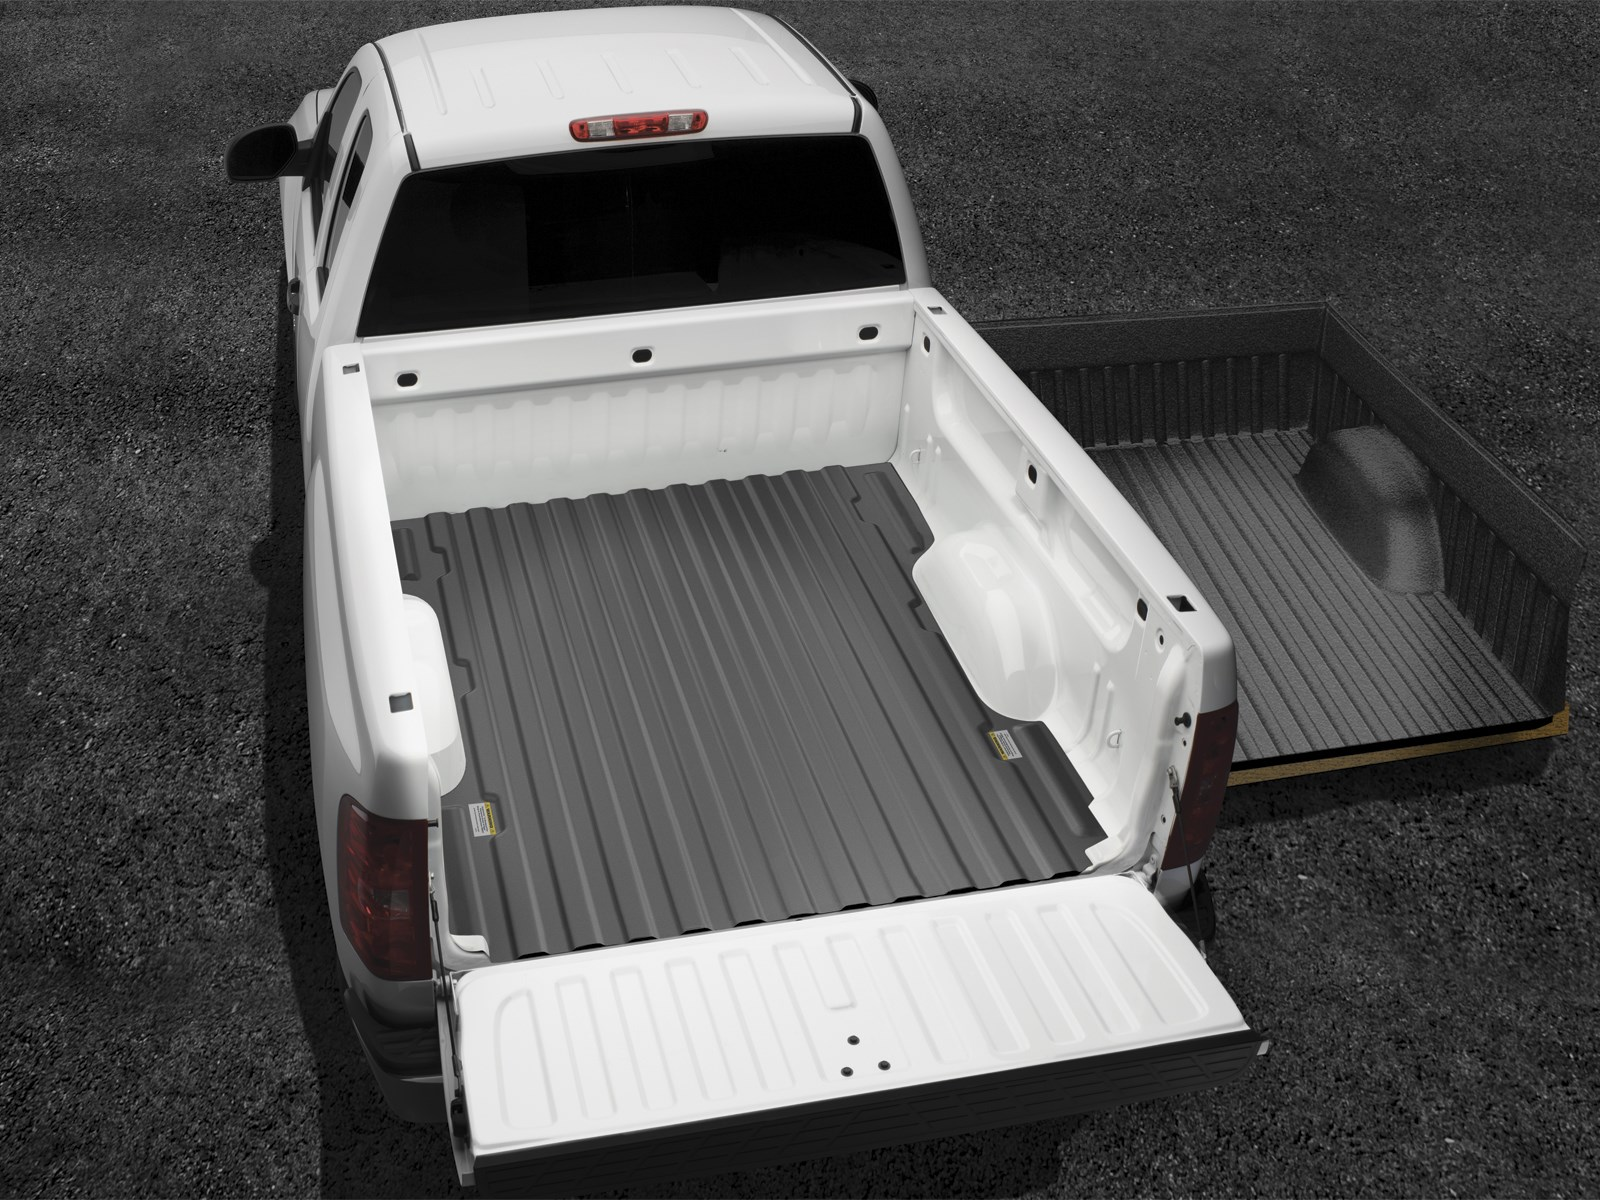 Underliner Bed Liner For Truck Drop In Bedliners Weathertech